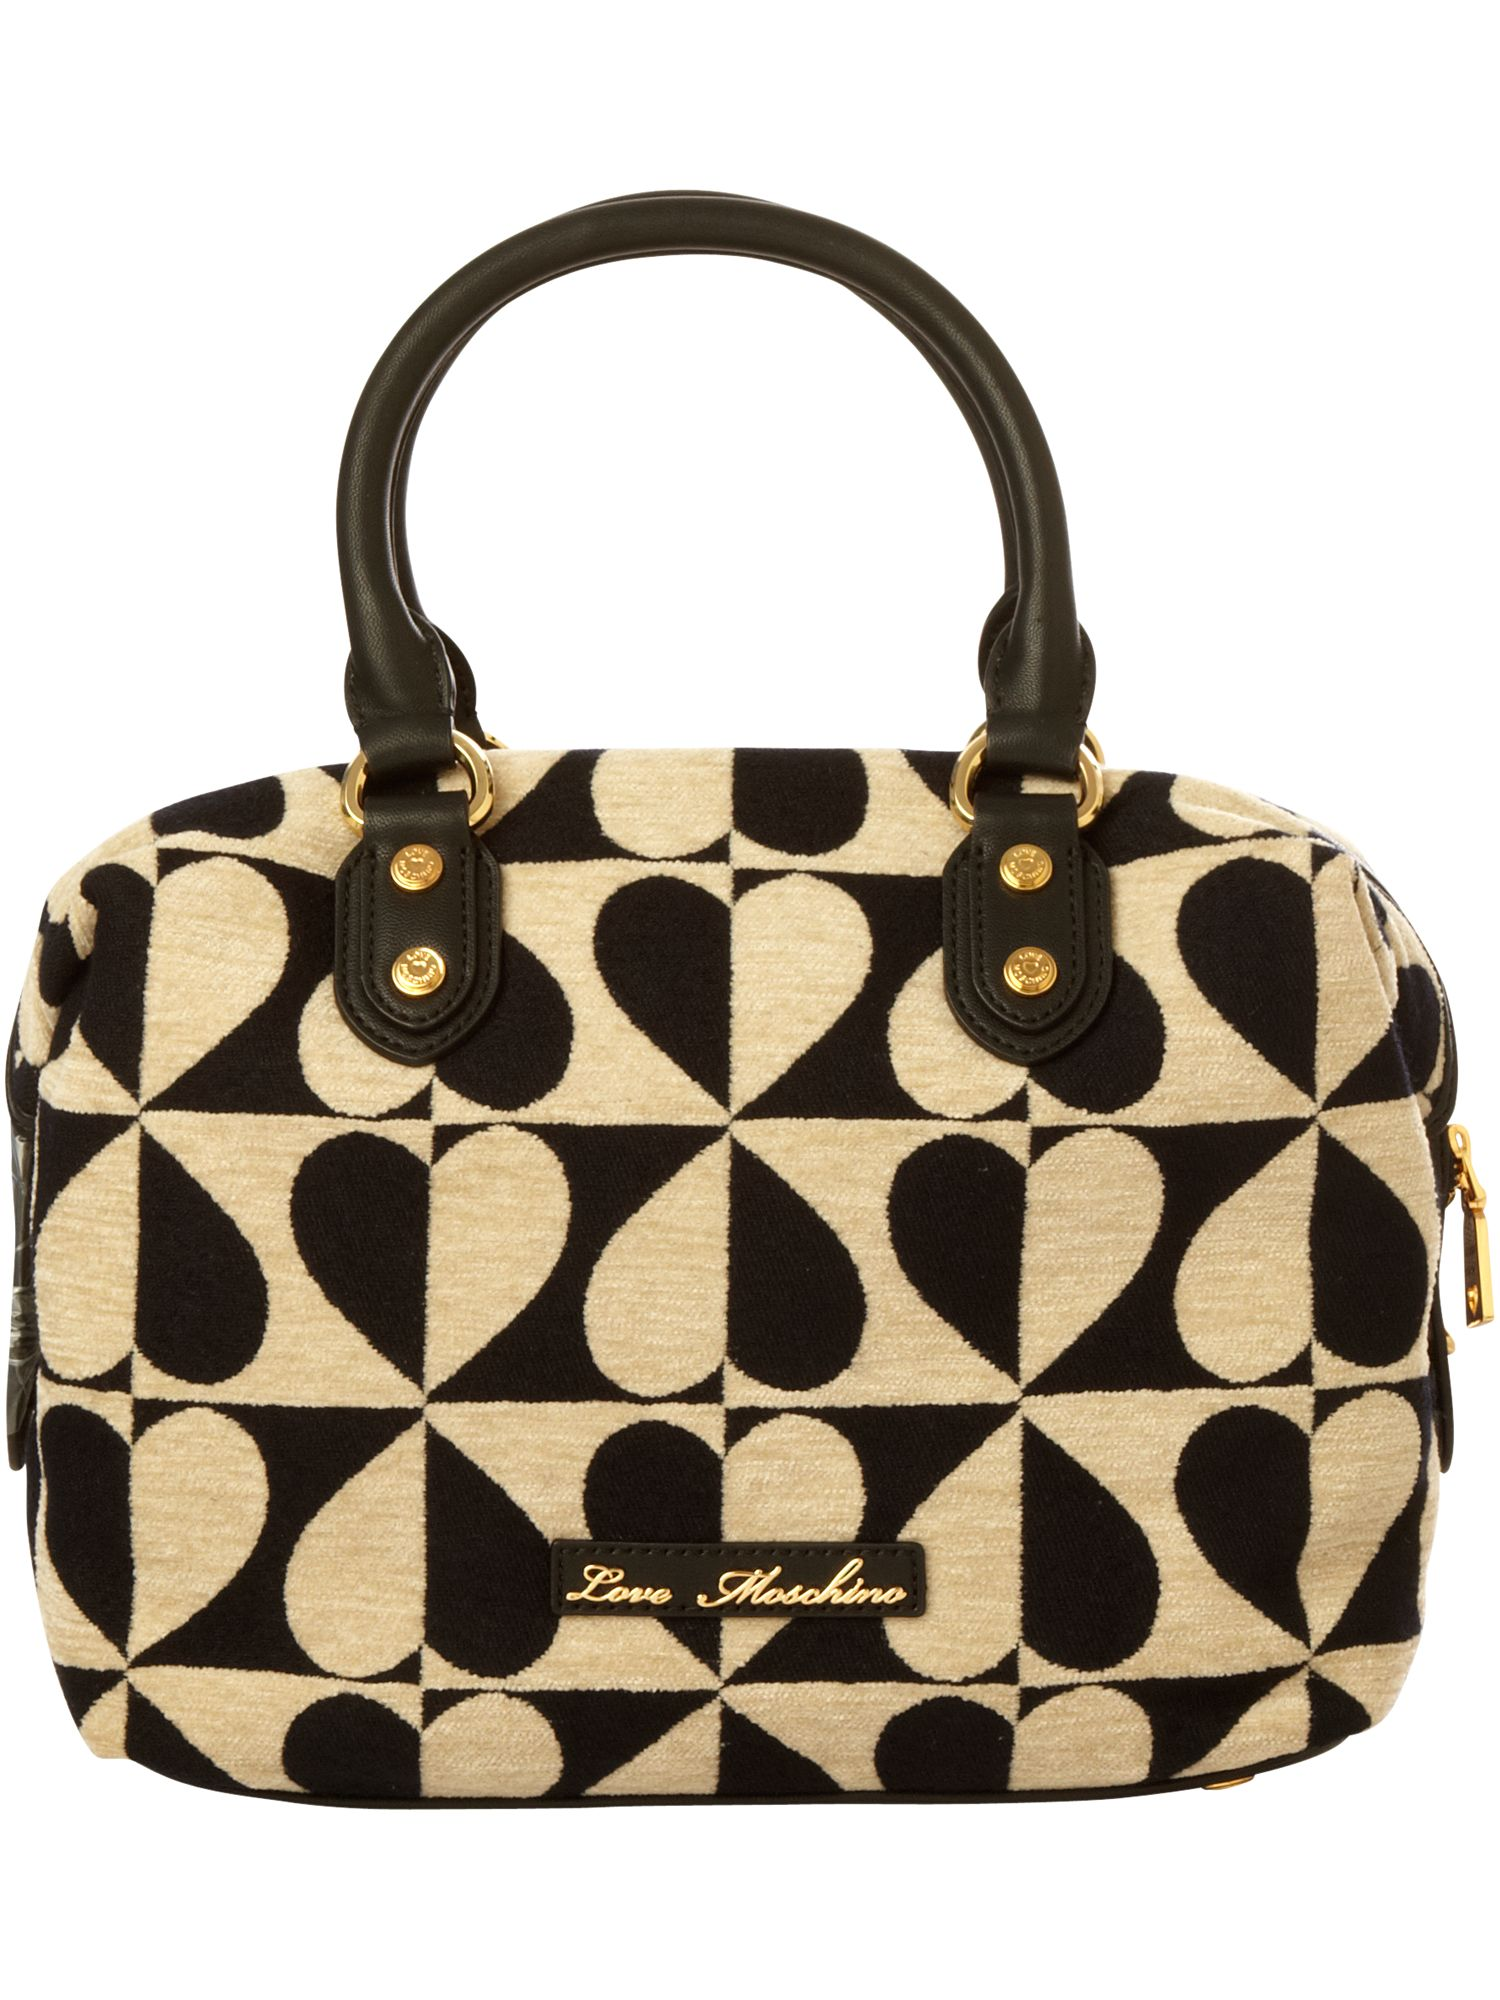 Love Moschino Soft Hearted small leather bowling bag product image